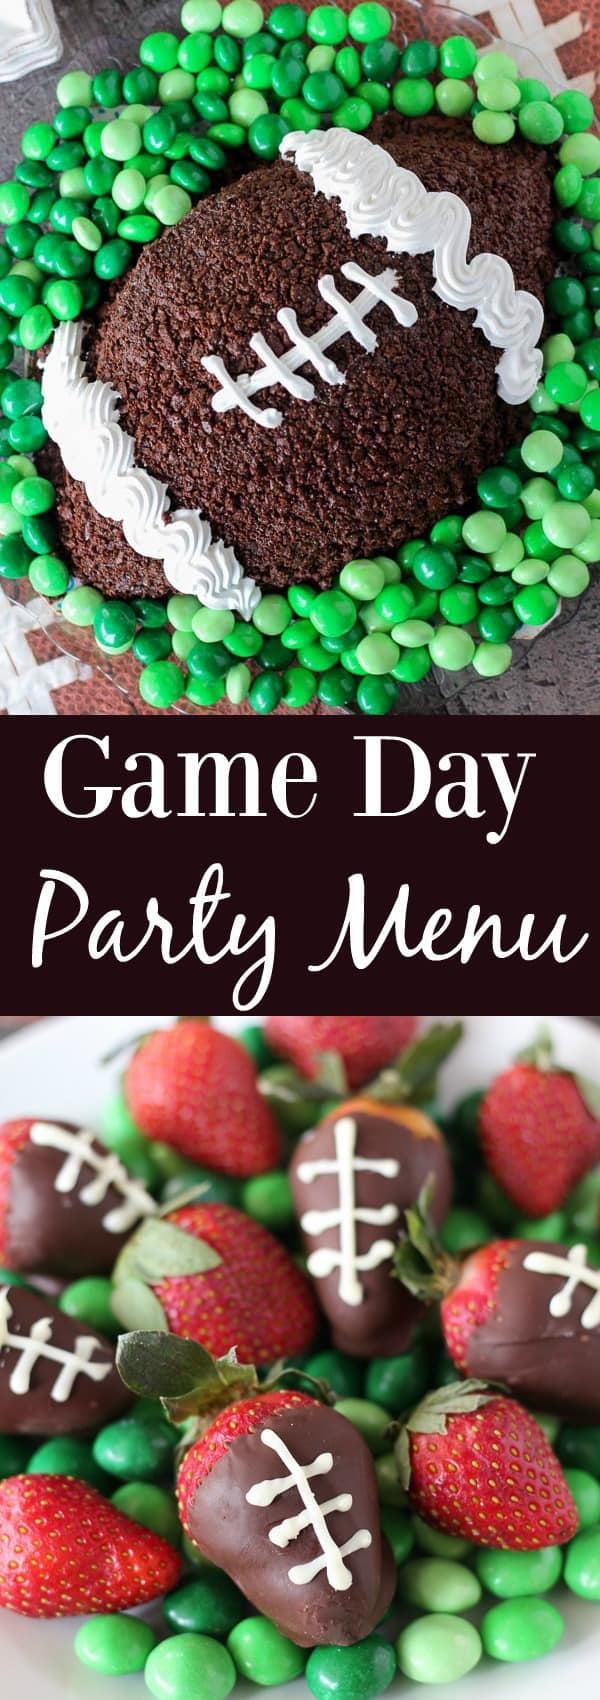 Easy Game Day Party Menu